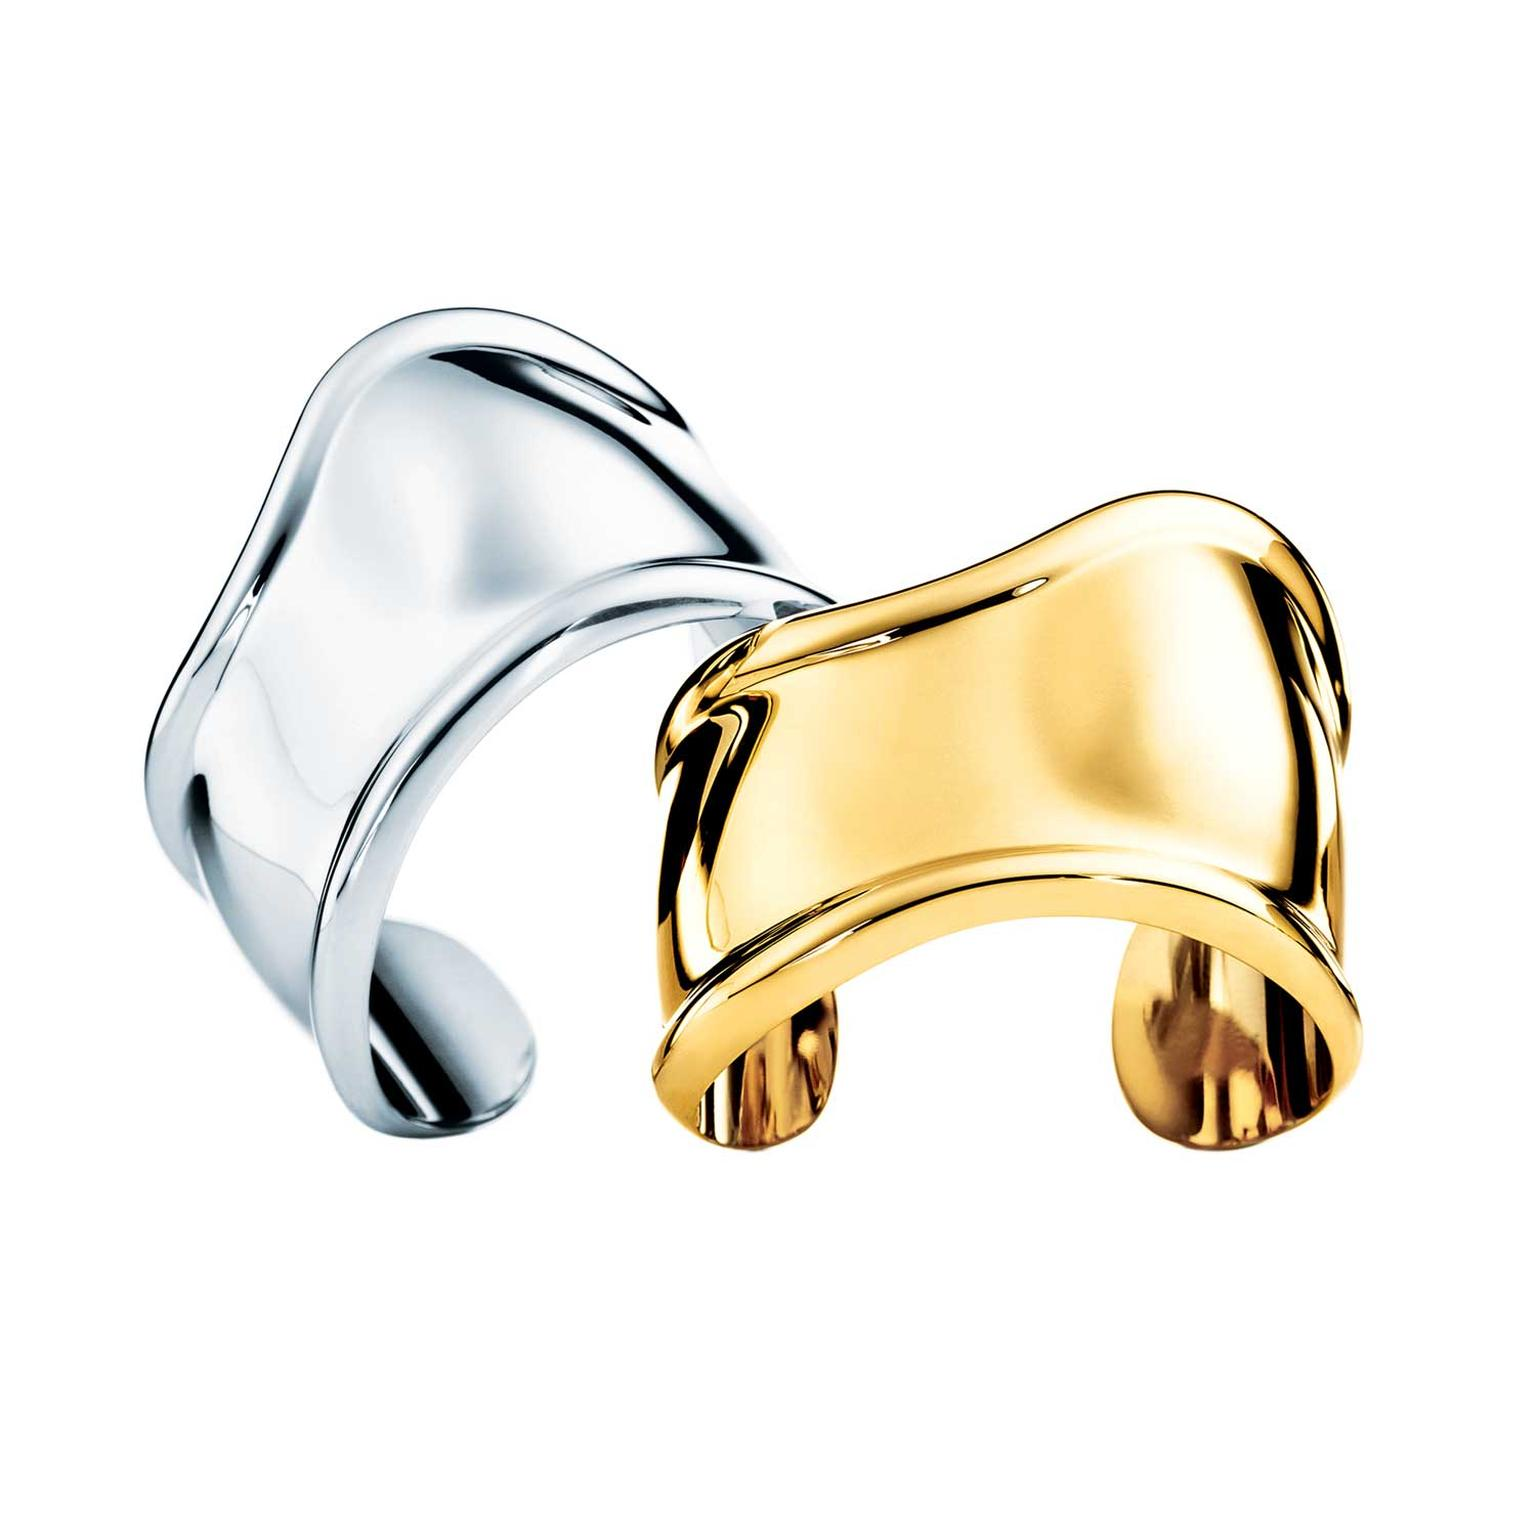 Elsa Peretti for Tiffany Bone cuffs in silver (£910) and yellow gold (£13,500).